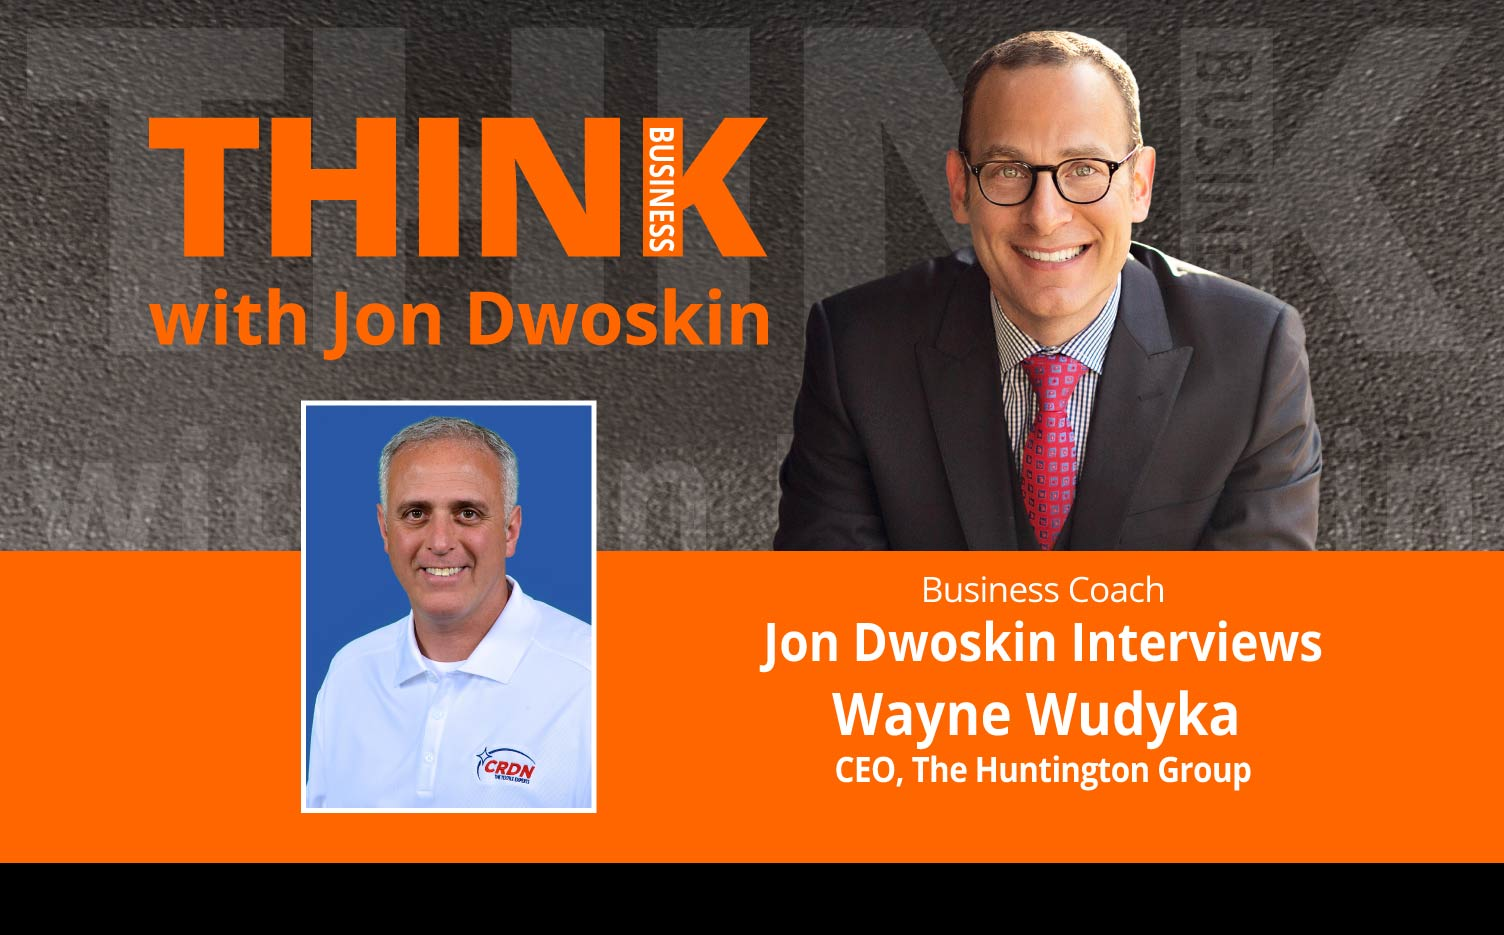 THINK Business Podcast: Jon Dwoskin Interviews Wayne Wudyka, CEO, The Huntington Group